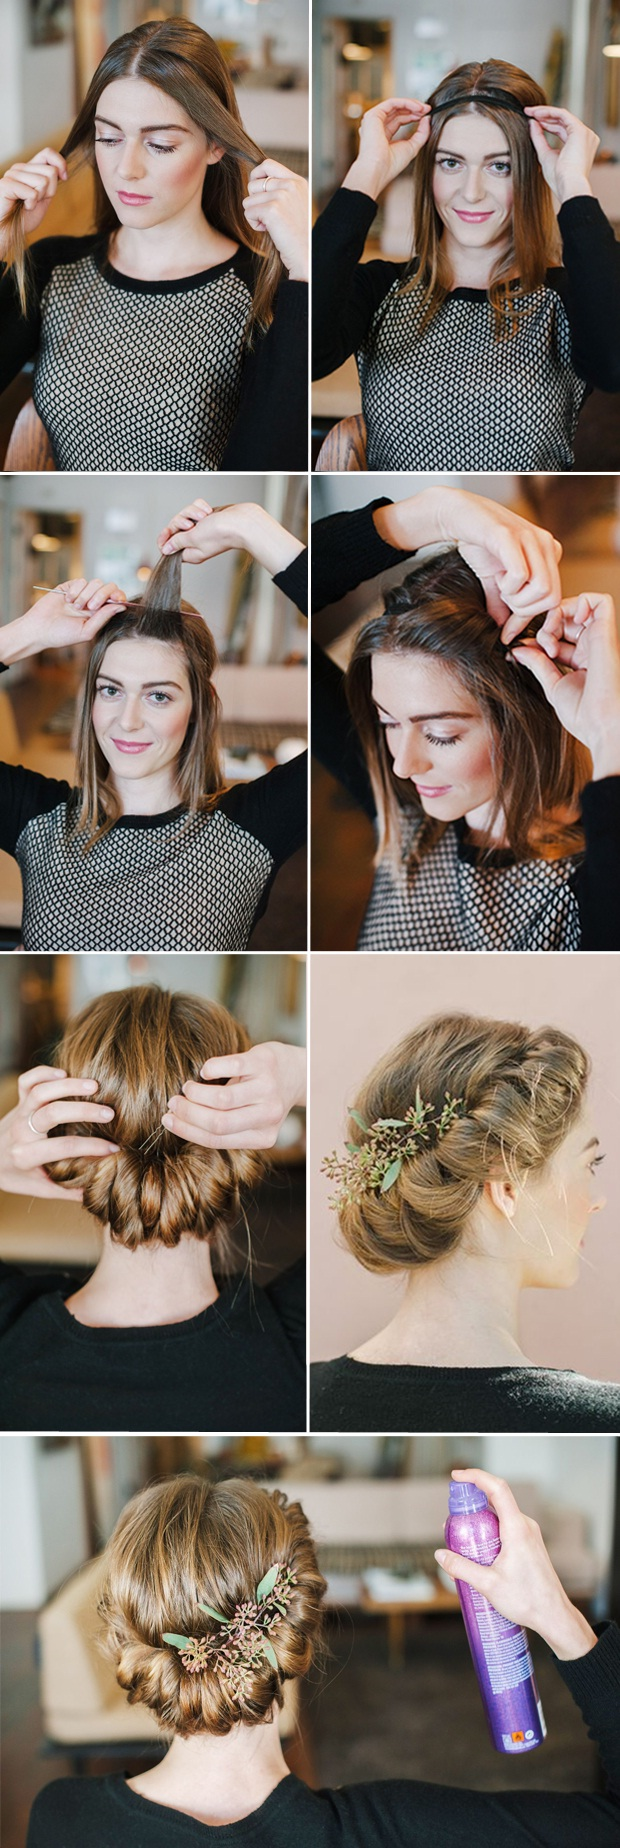 10 Beautiful Trend Wedding Hairstyles Tutorials New Wedding Hairstyle